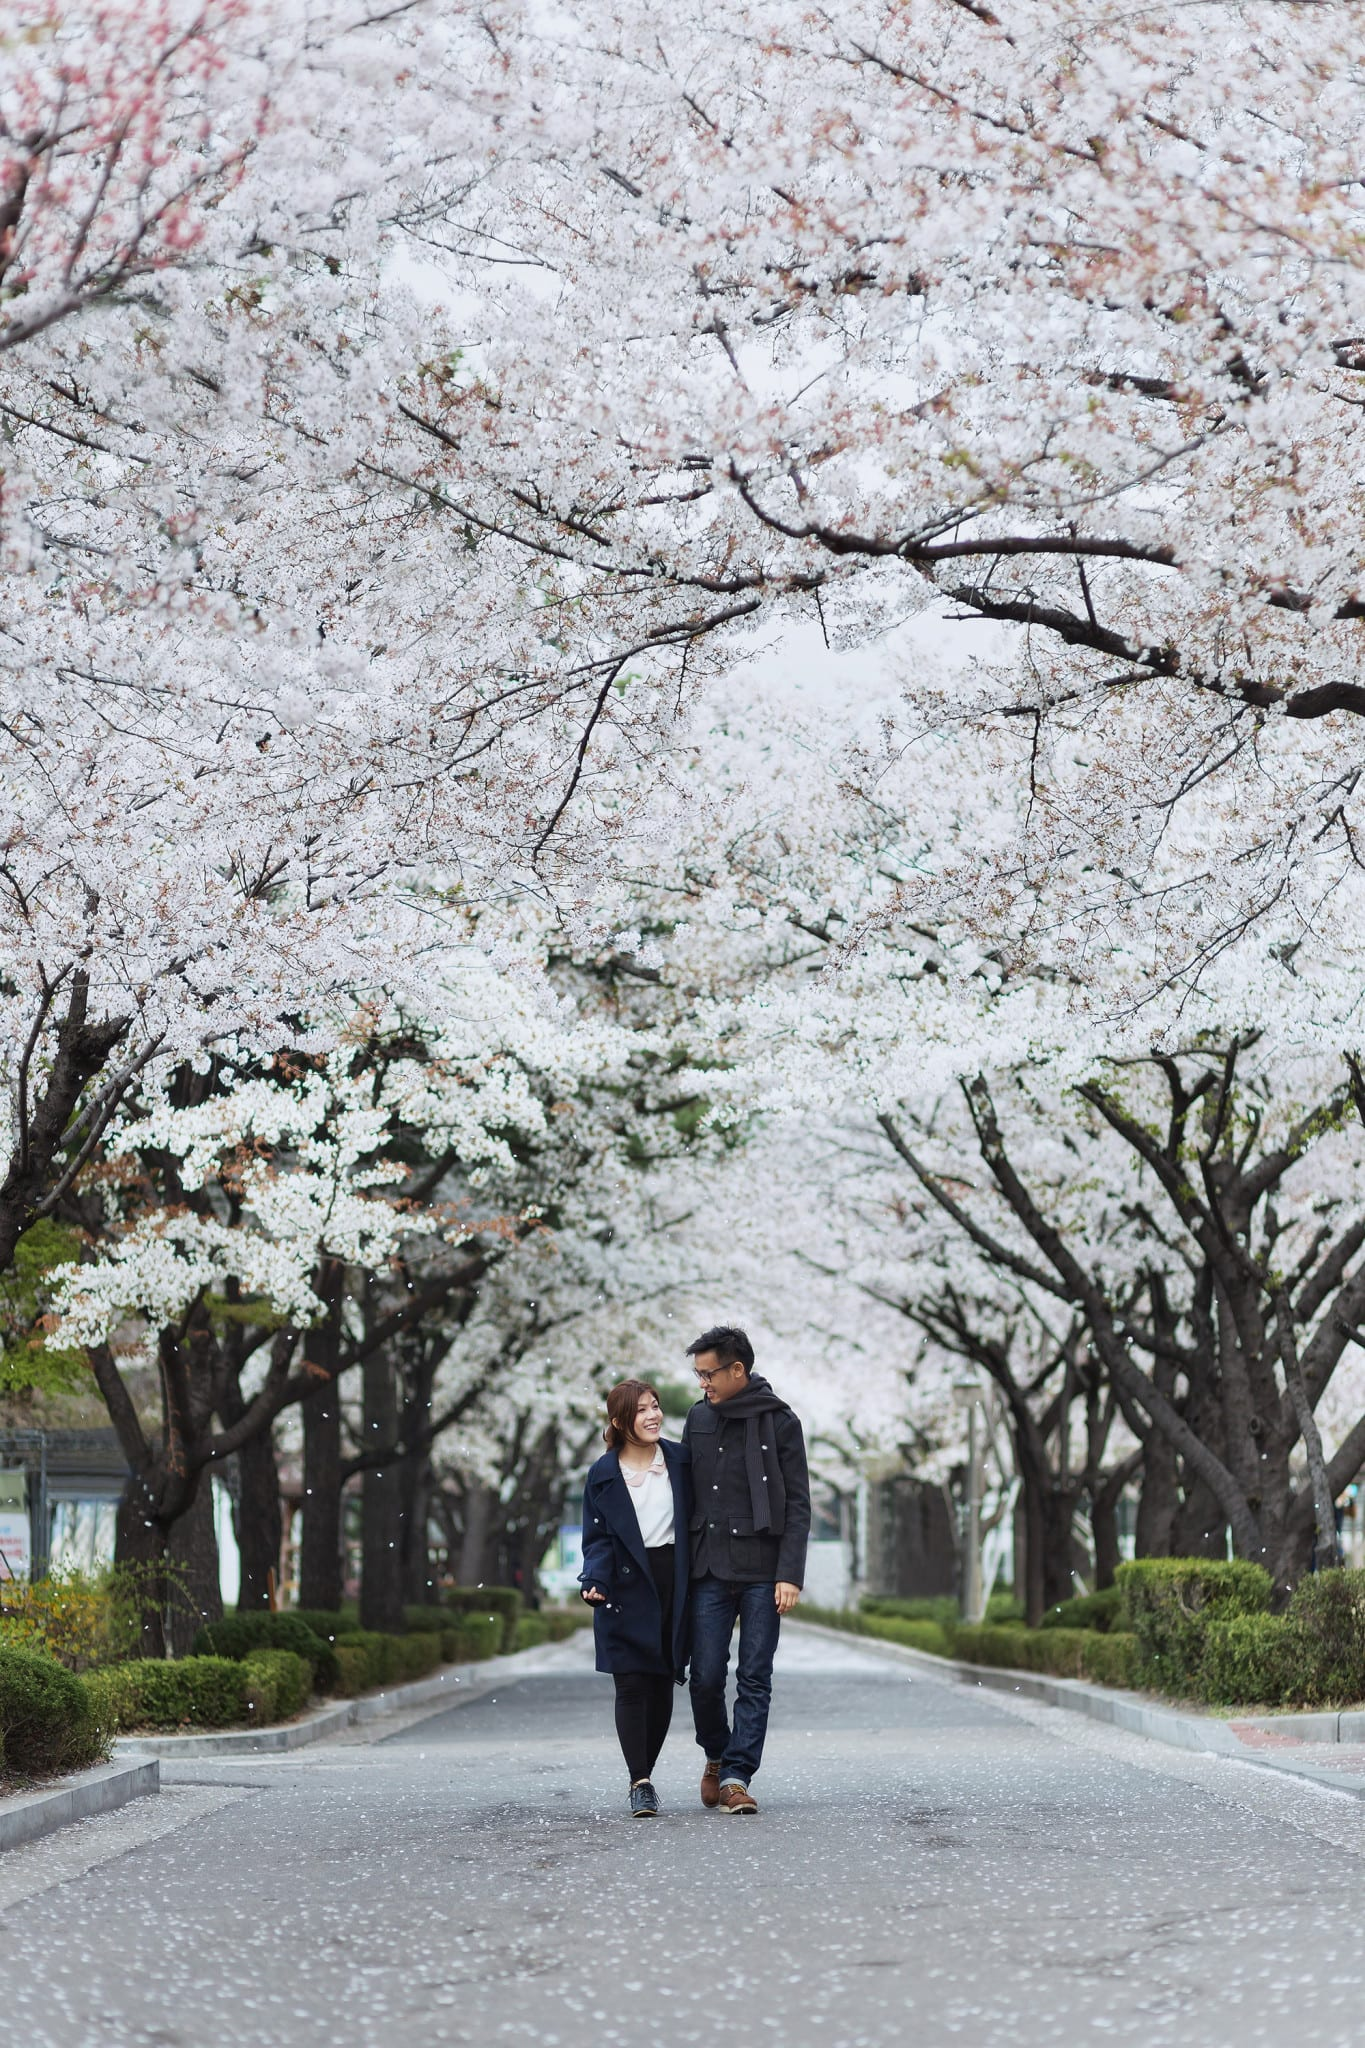 Most Popular Destinations For Your Overseas Pre-wedding